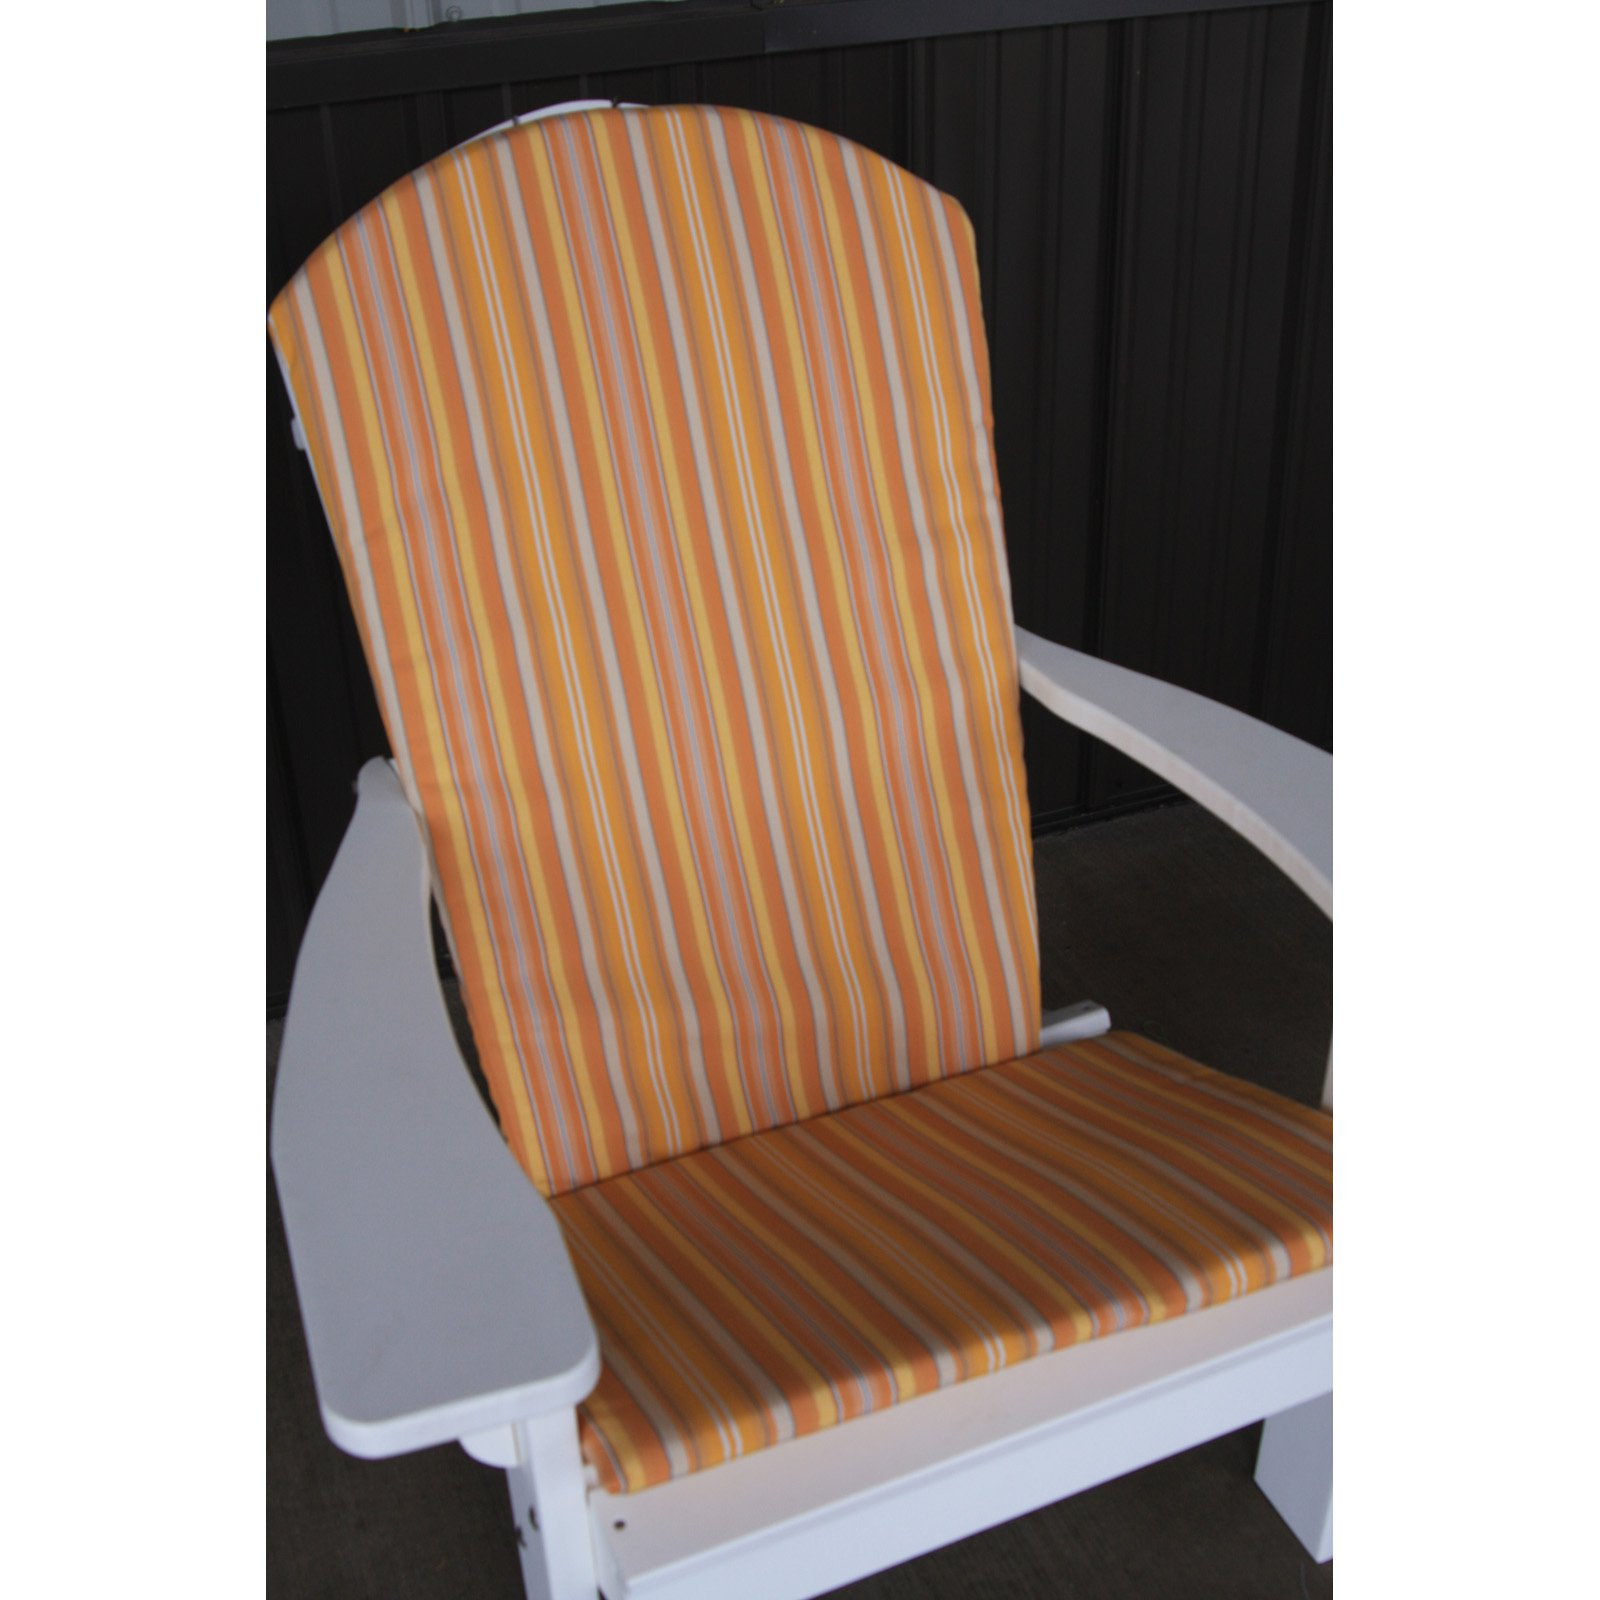 A & L Furniture Sundown Agora Adirondack Chair Full Cushion - 48L x 22W in.